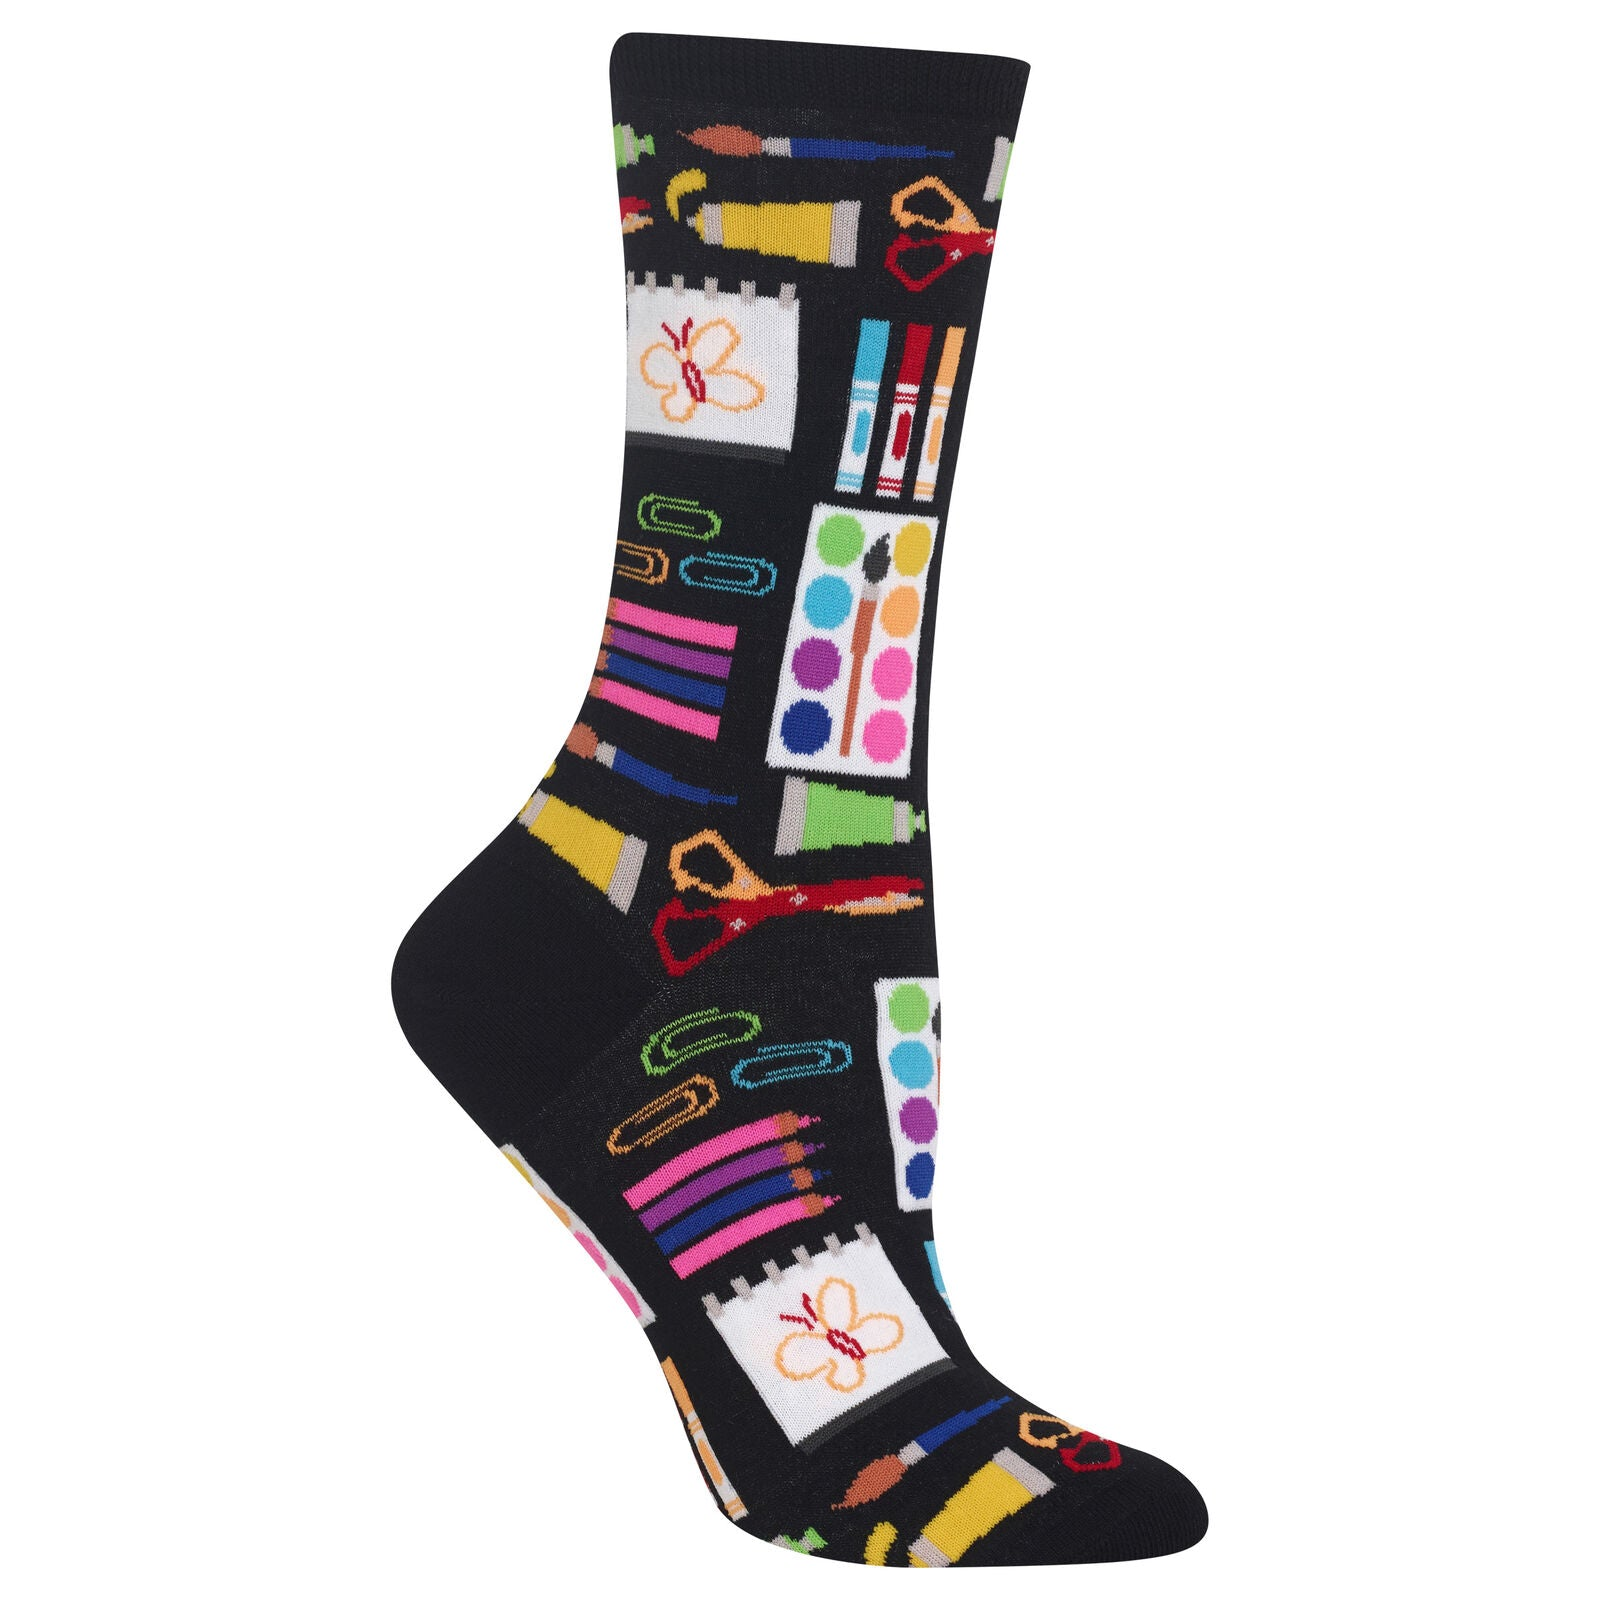 Socks with Art Supplies